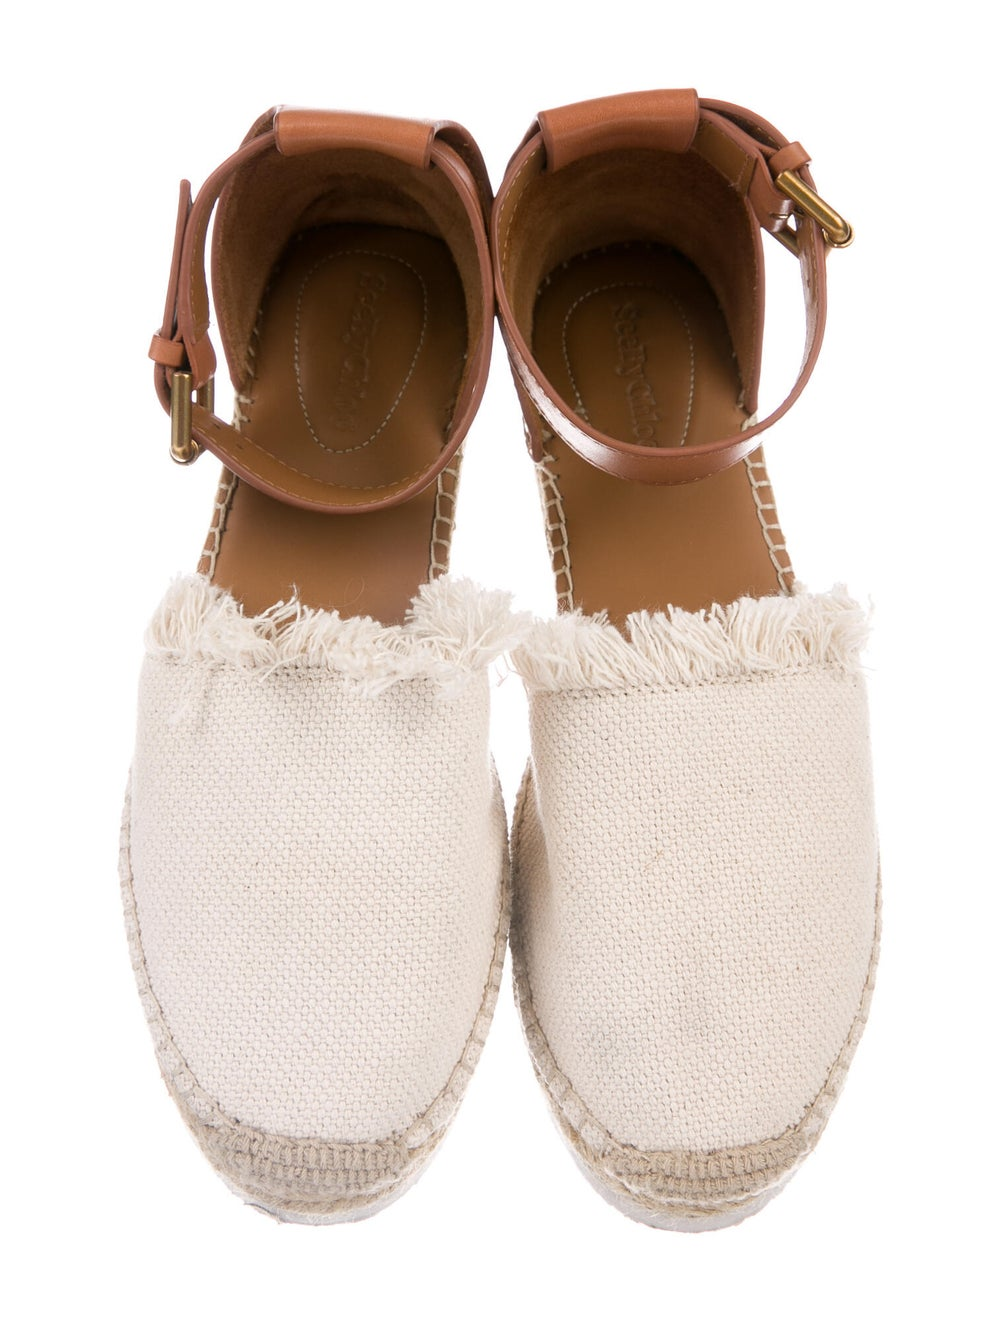 See by Chloé Espadrilles - image 3